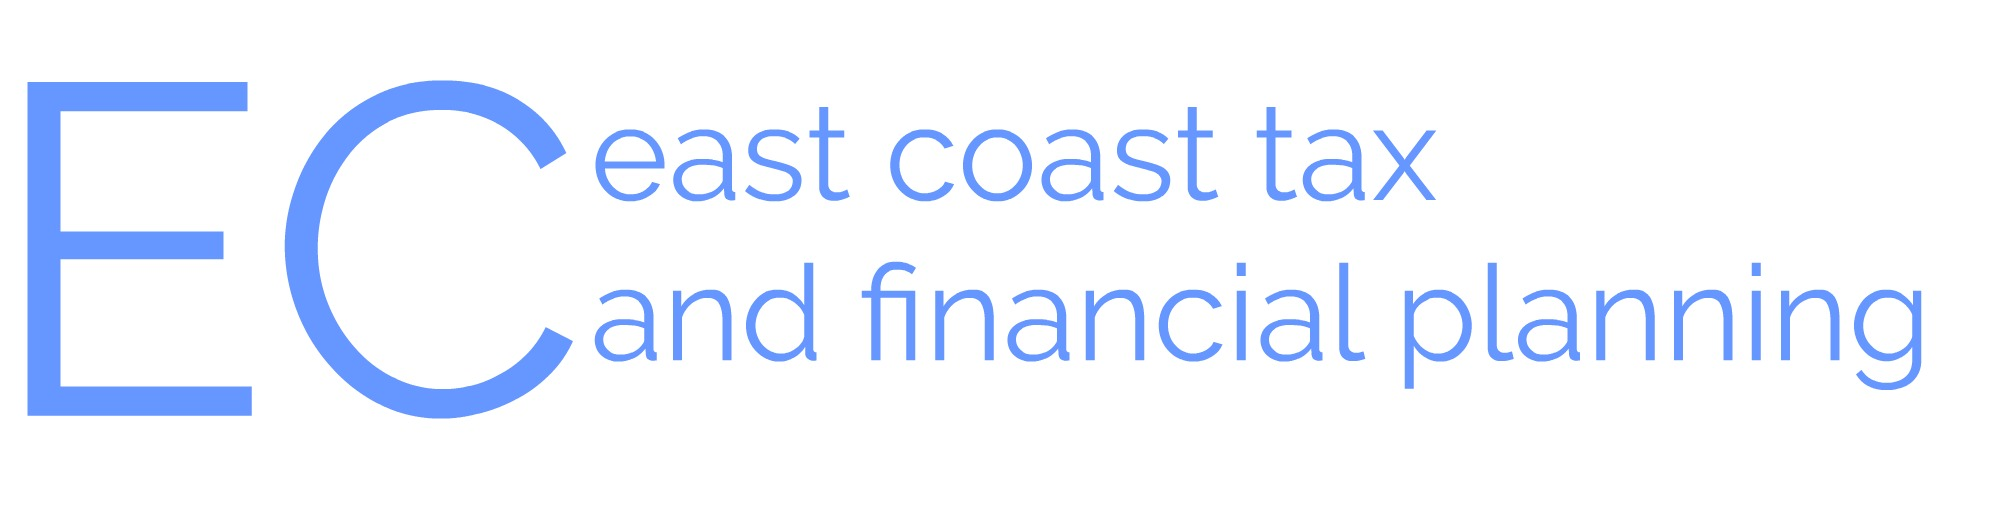 East Coast Tax and Financial Planning